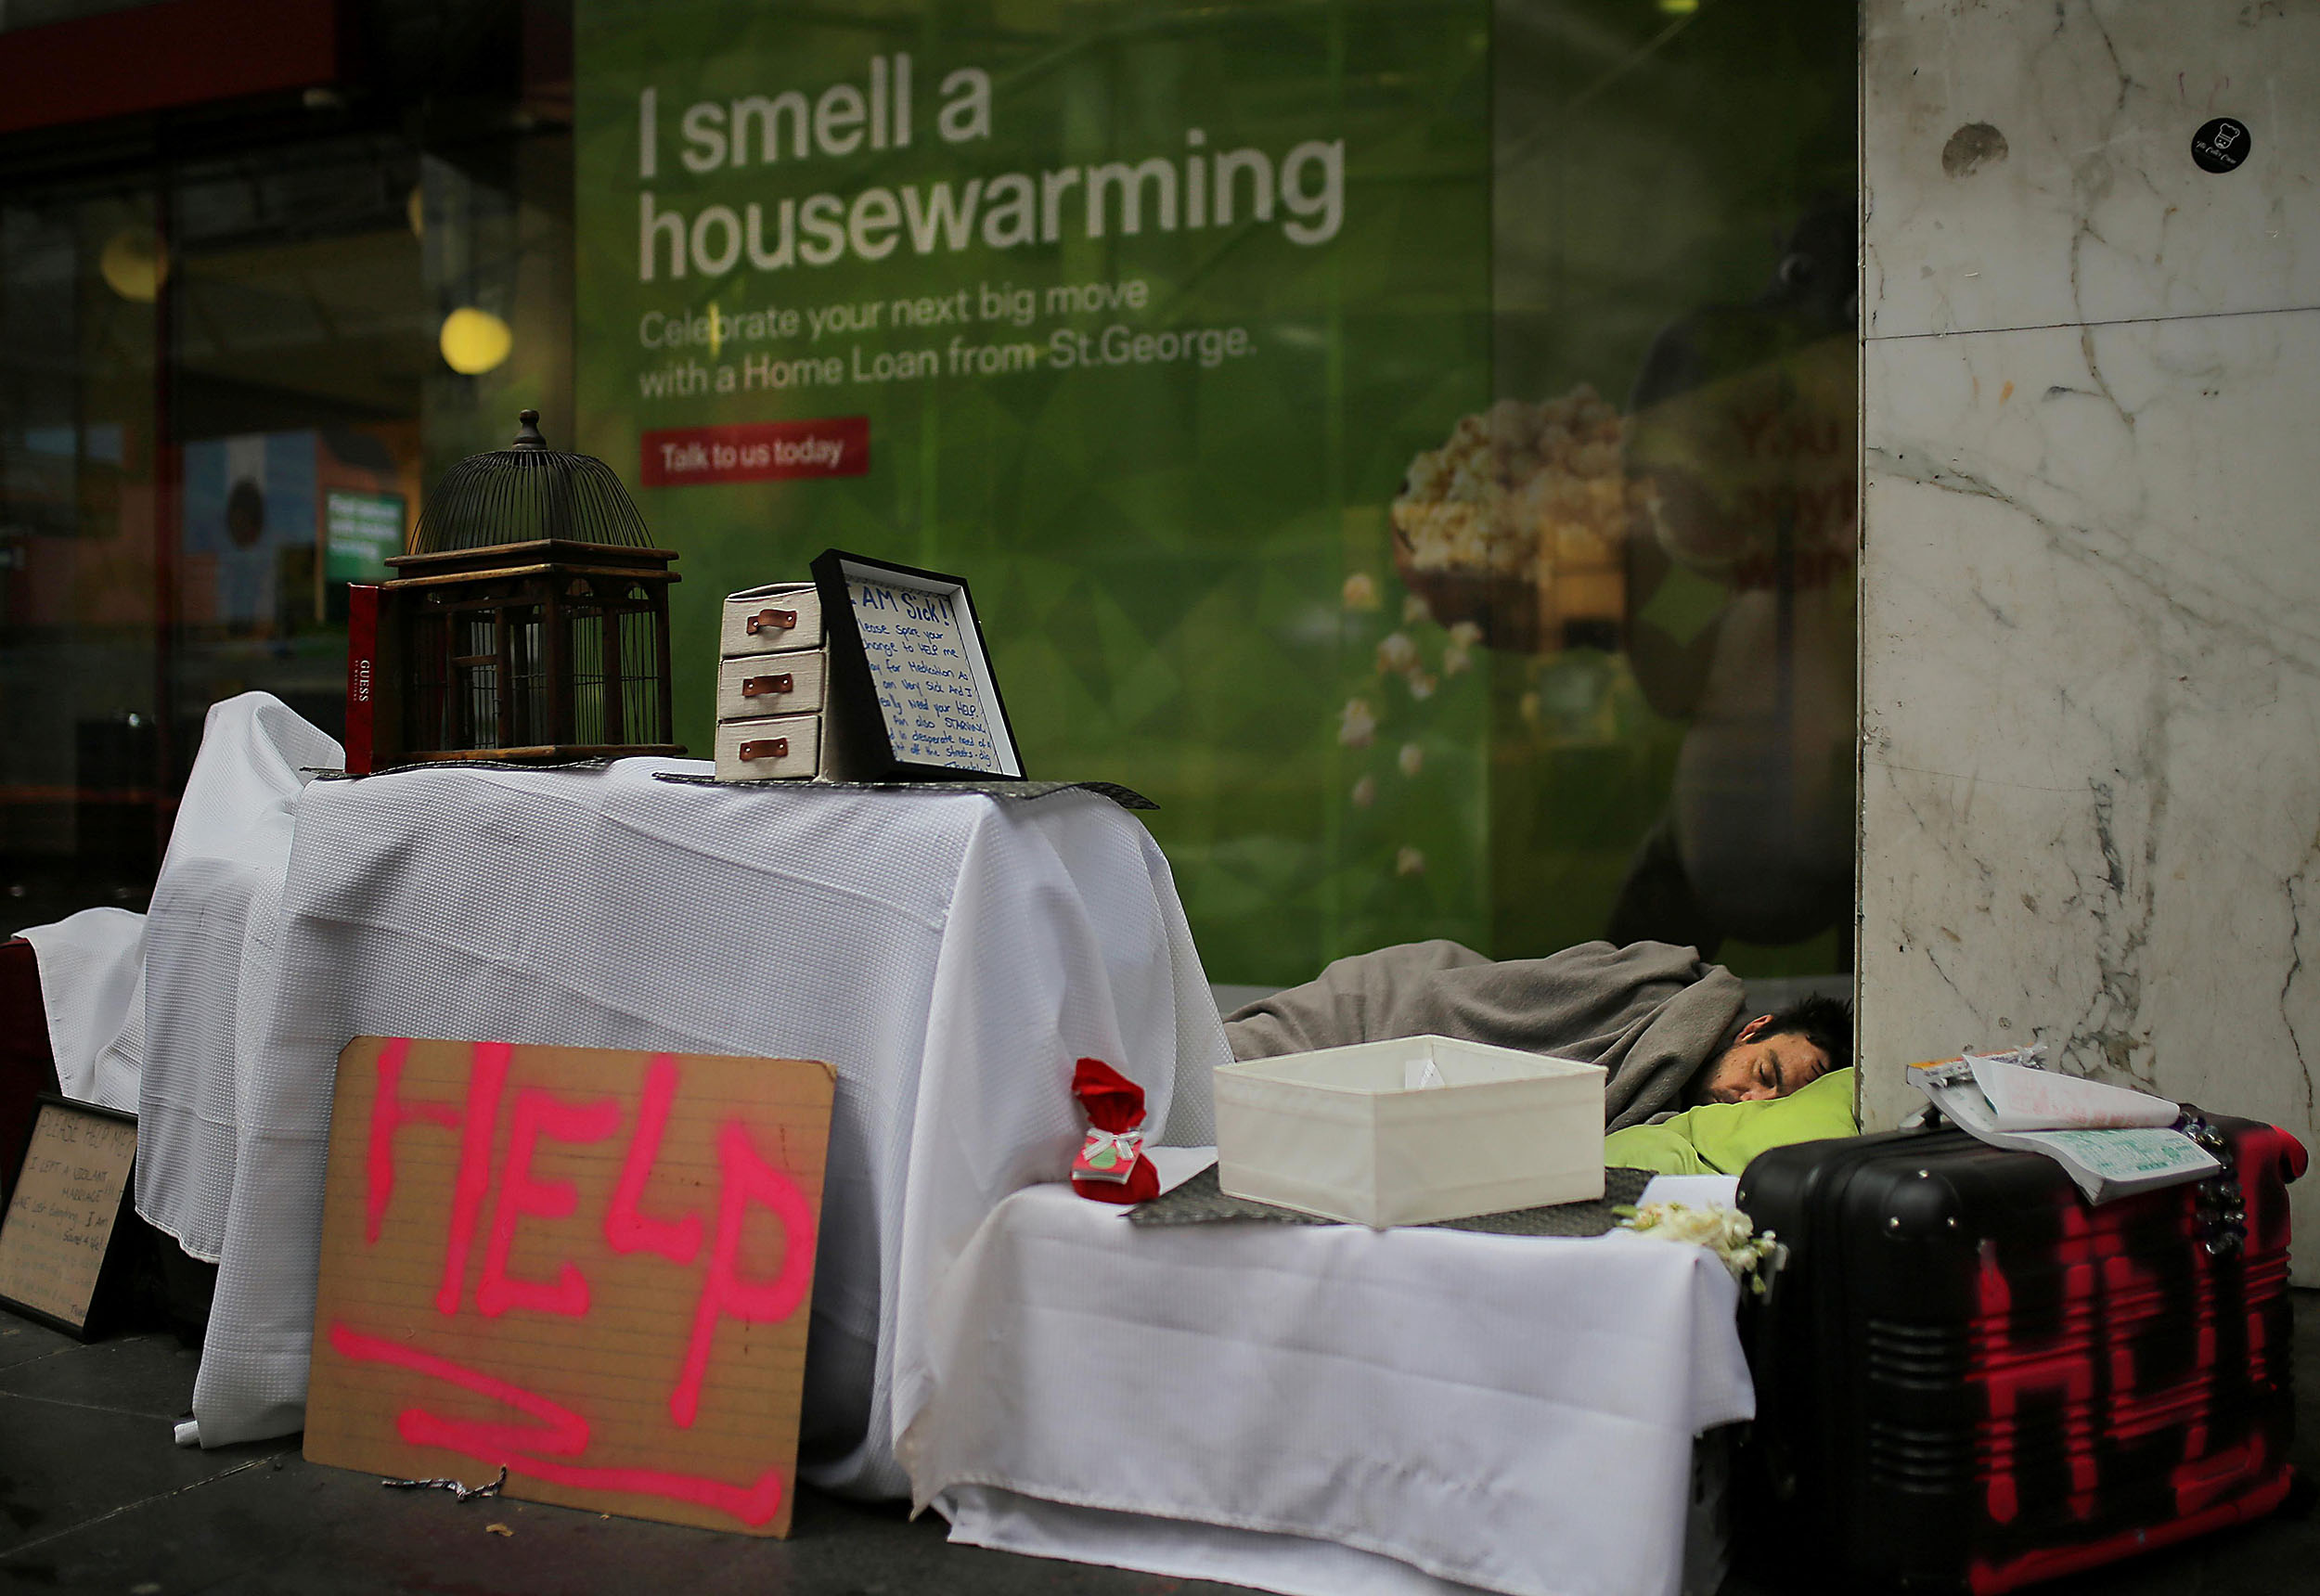 A homeless man sleeps in a makeshift encampment in front of a bank displaying a home loan advertisement in central Sydney, Australia, July 31, 2017.